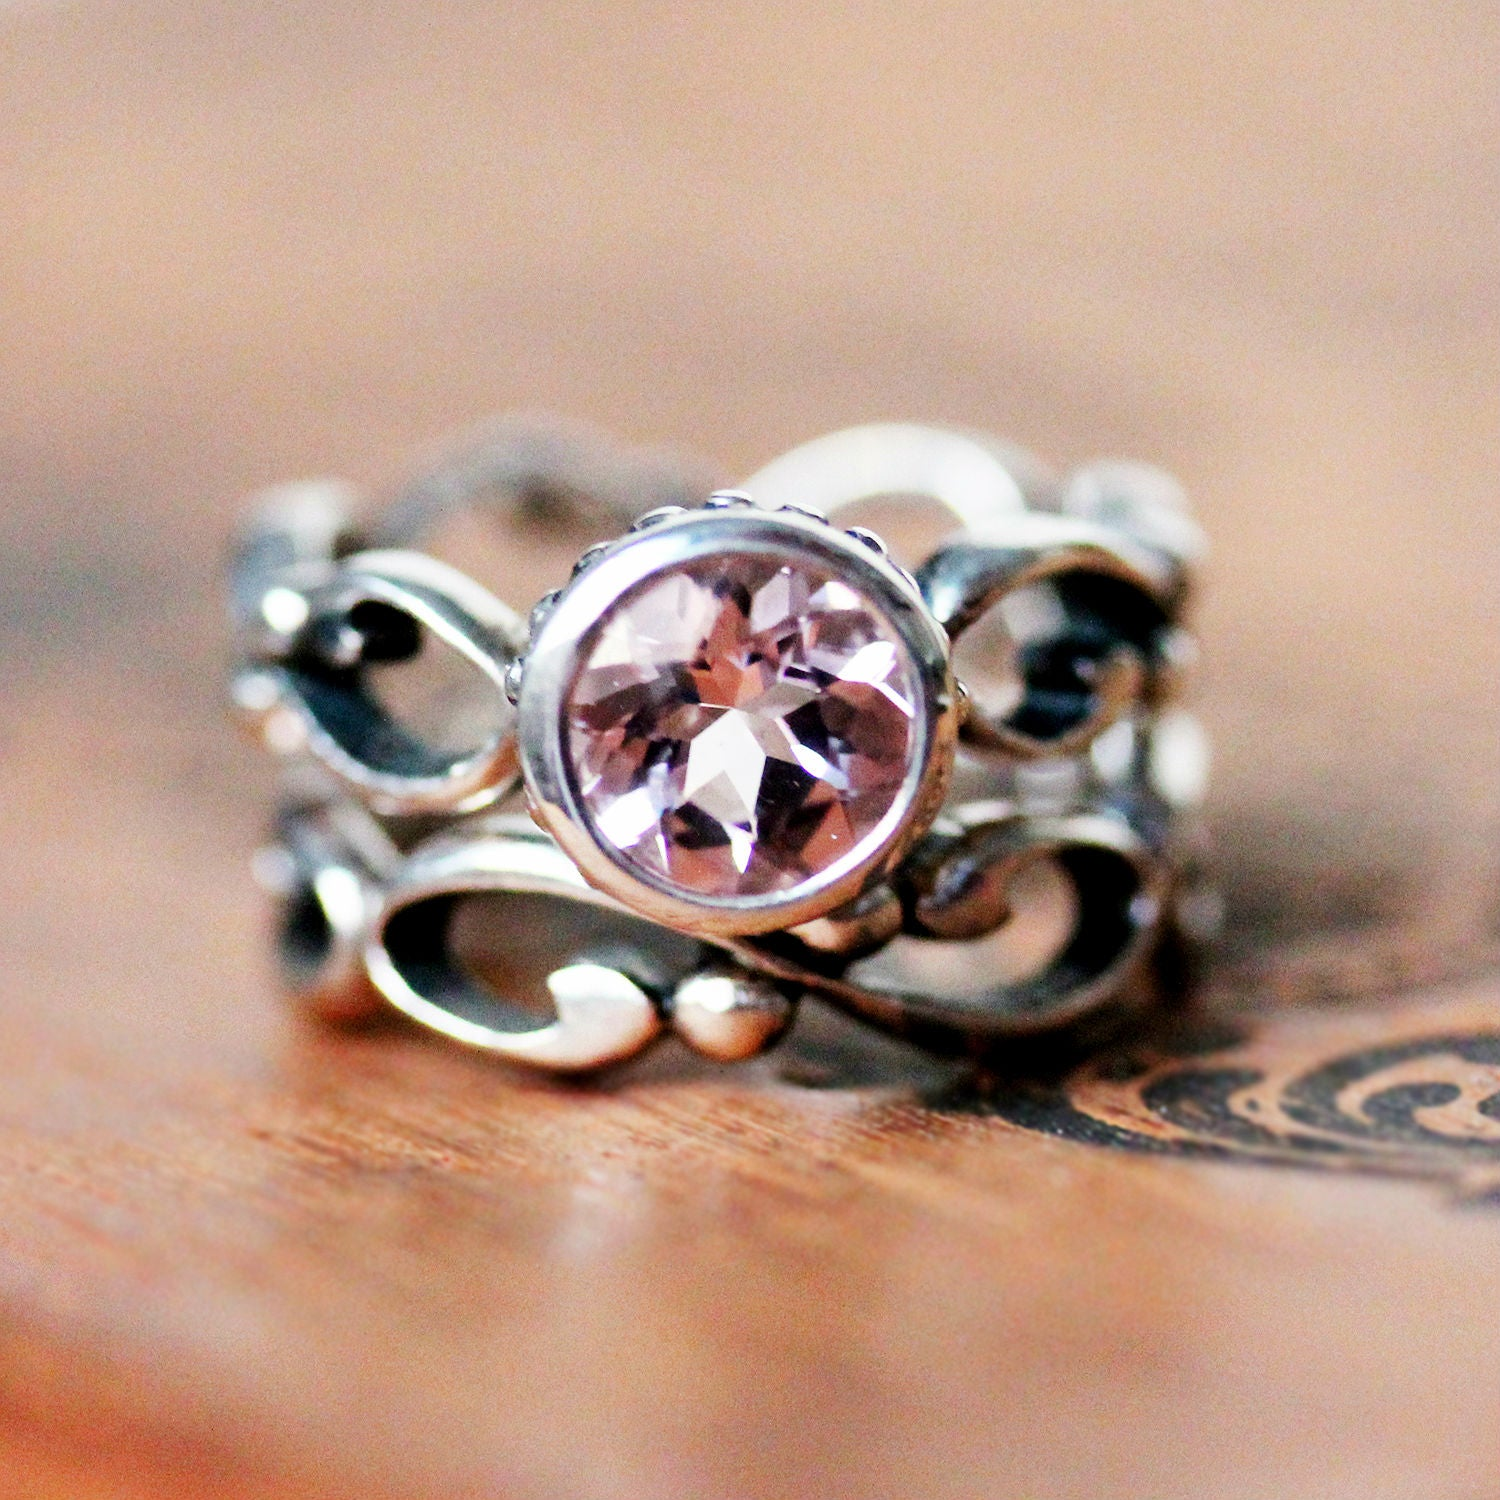 Close view of a custom engagement ring made of sterling silver and pink morganite from Metalicious